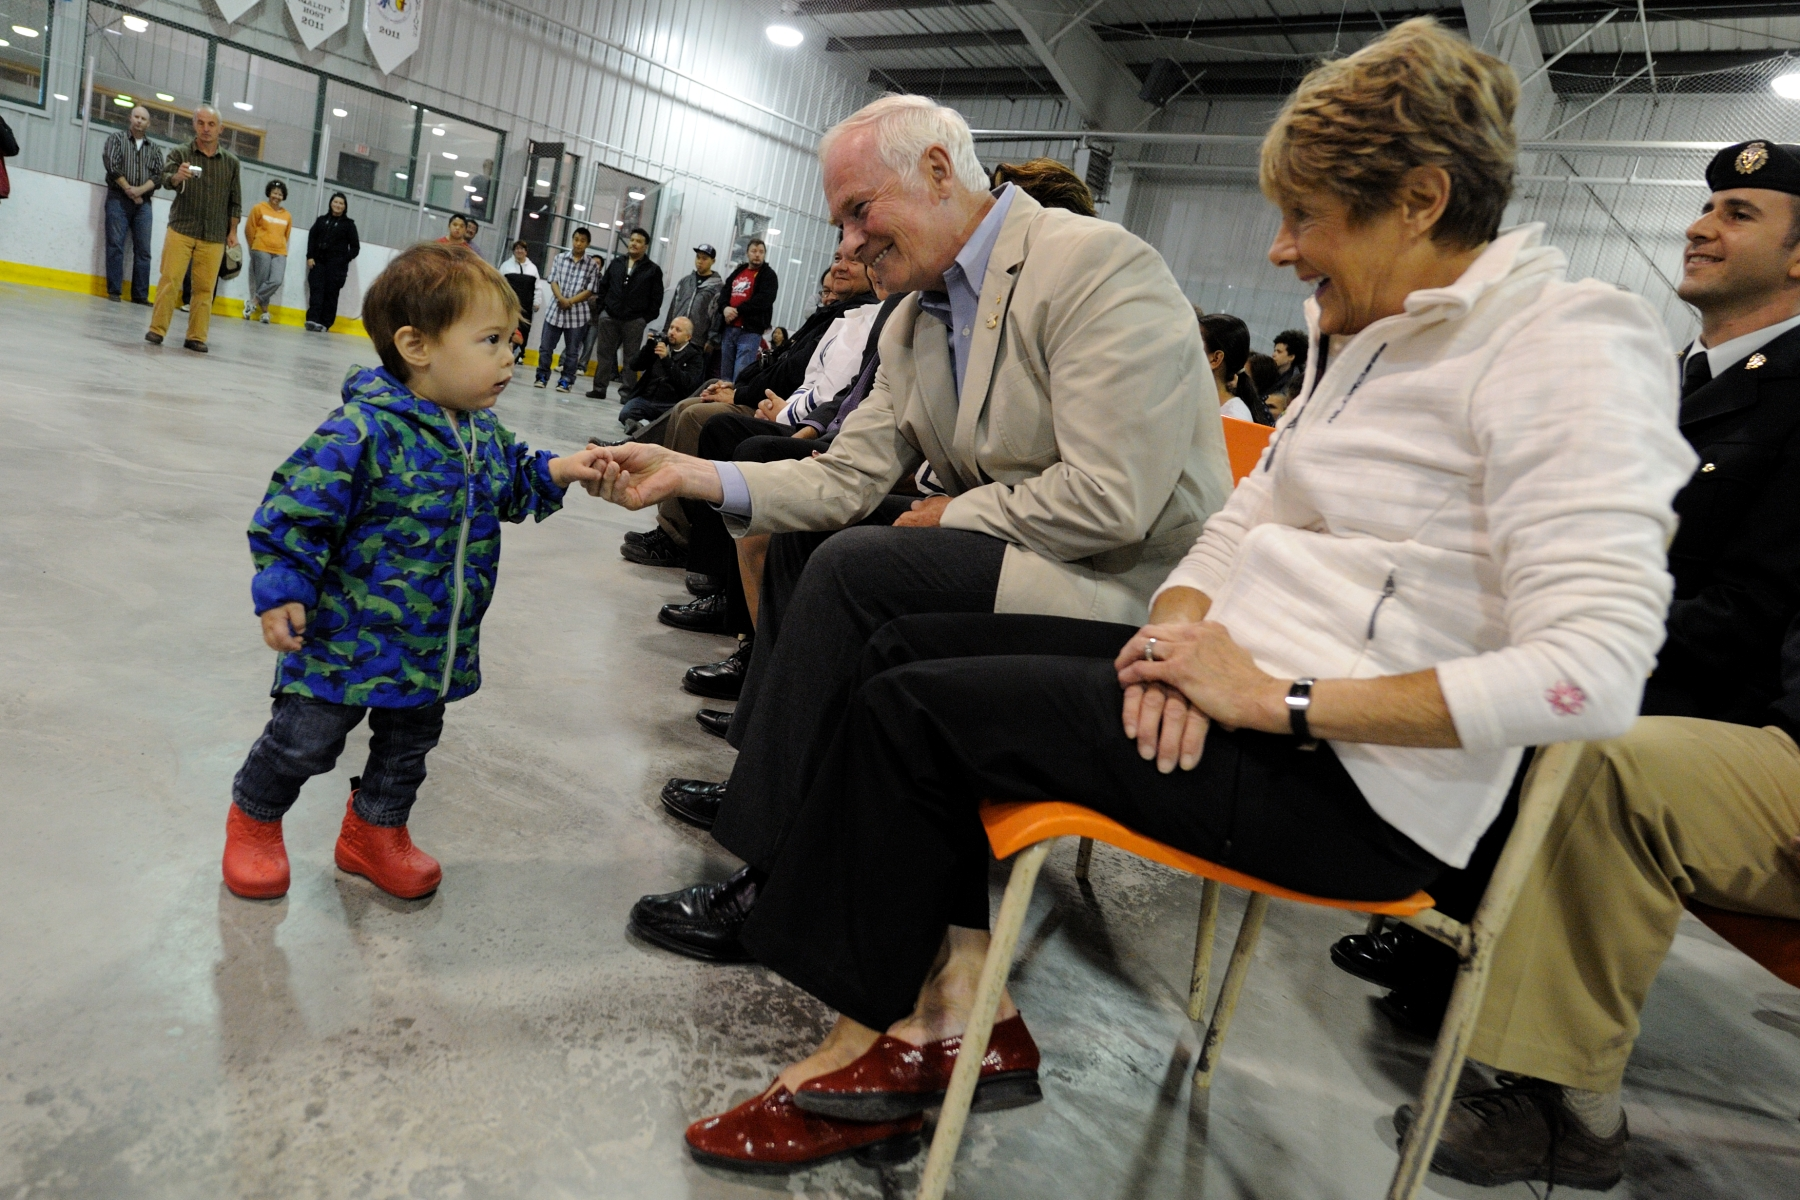 Their Excellencies took part in a community feast. During the feast, they met with the people of Iqaluit and experienced Inuit culture, food and traditions. The Governor General is seen in this photo shaking hands with Thor Puya Chemko, a little boy from Iqaluit, Nunavut.